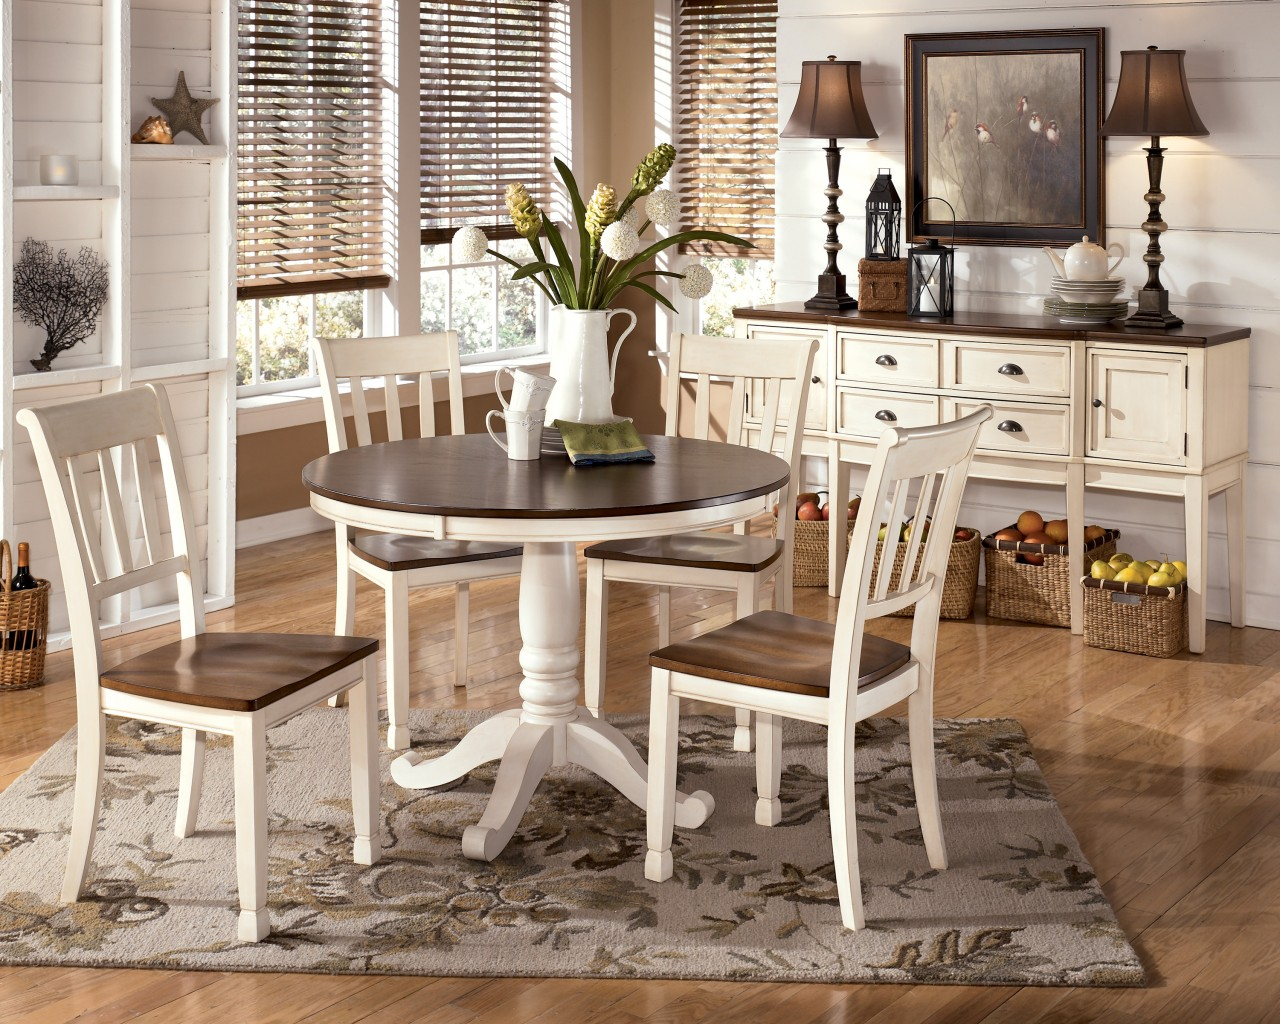 Image of: White Pedestal Dining Table and Chairs